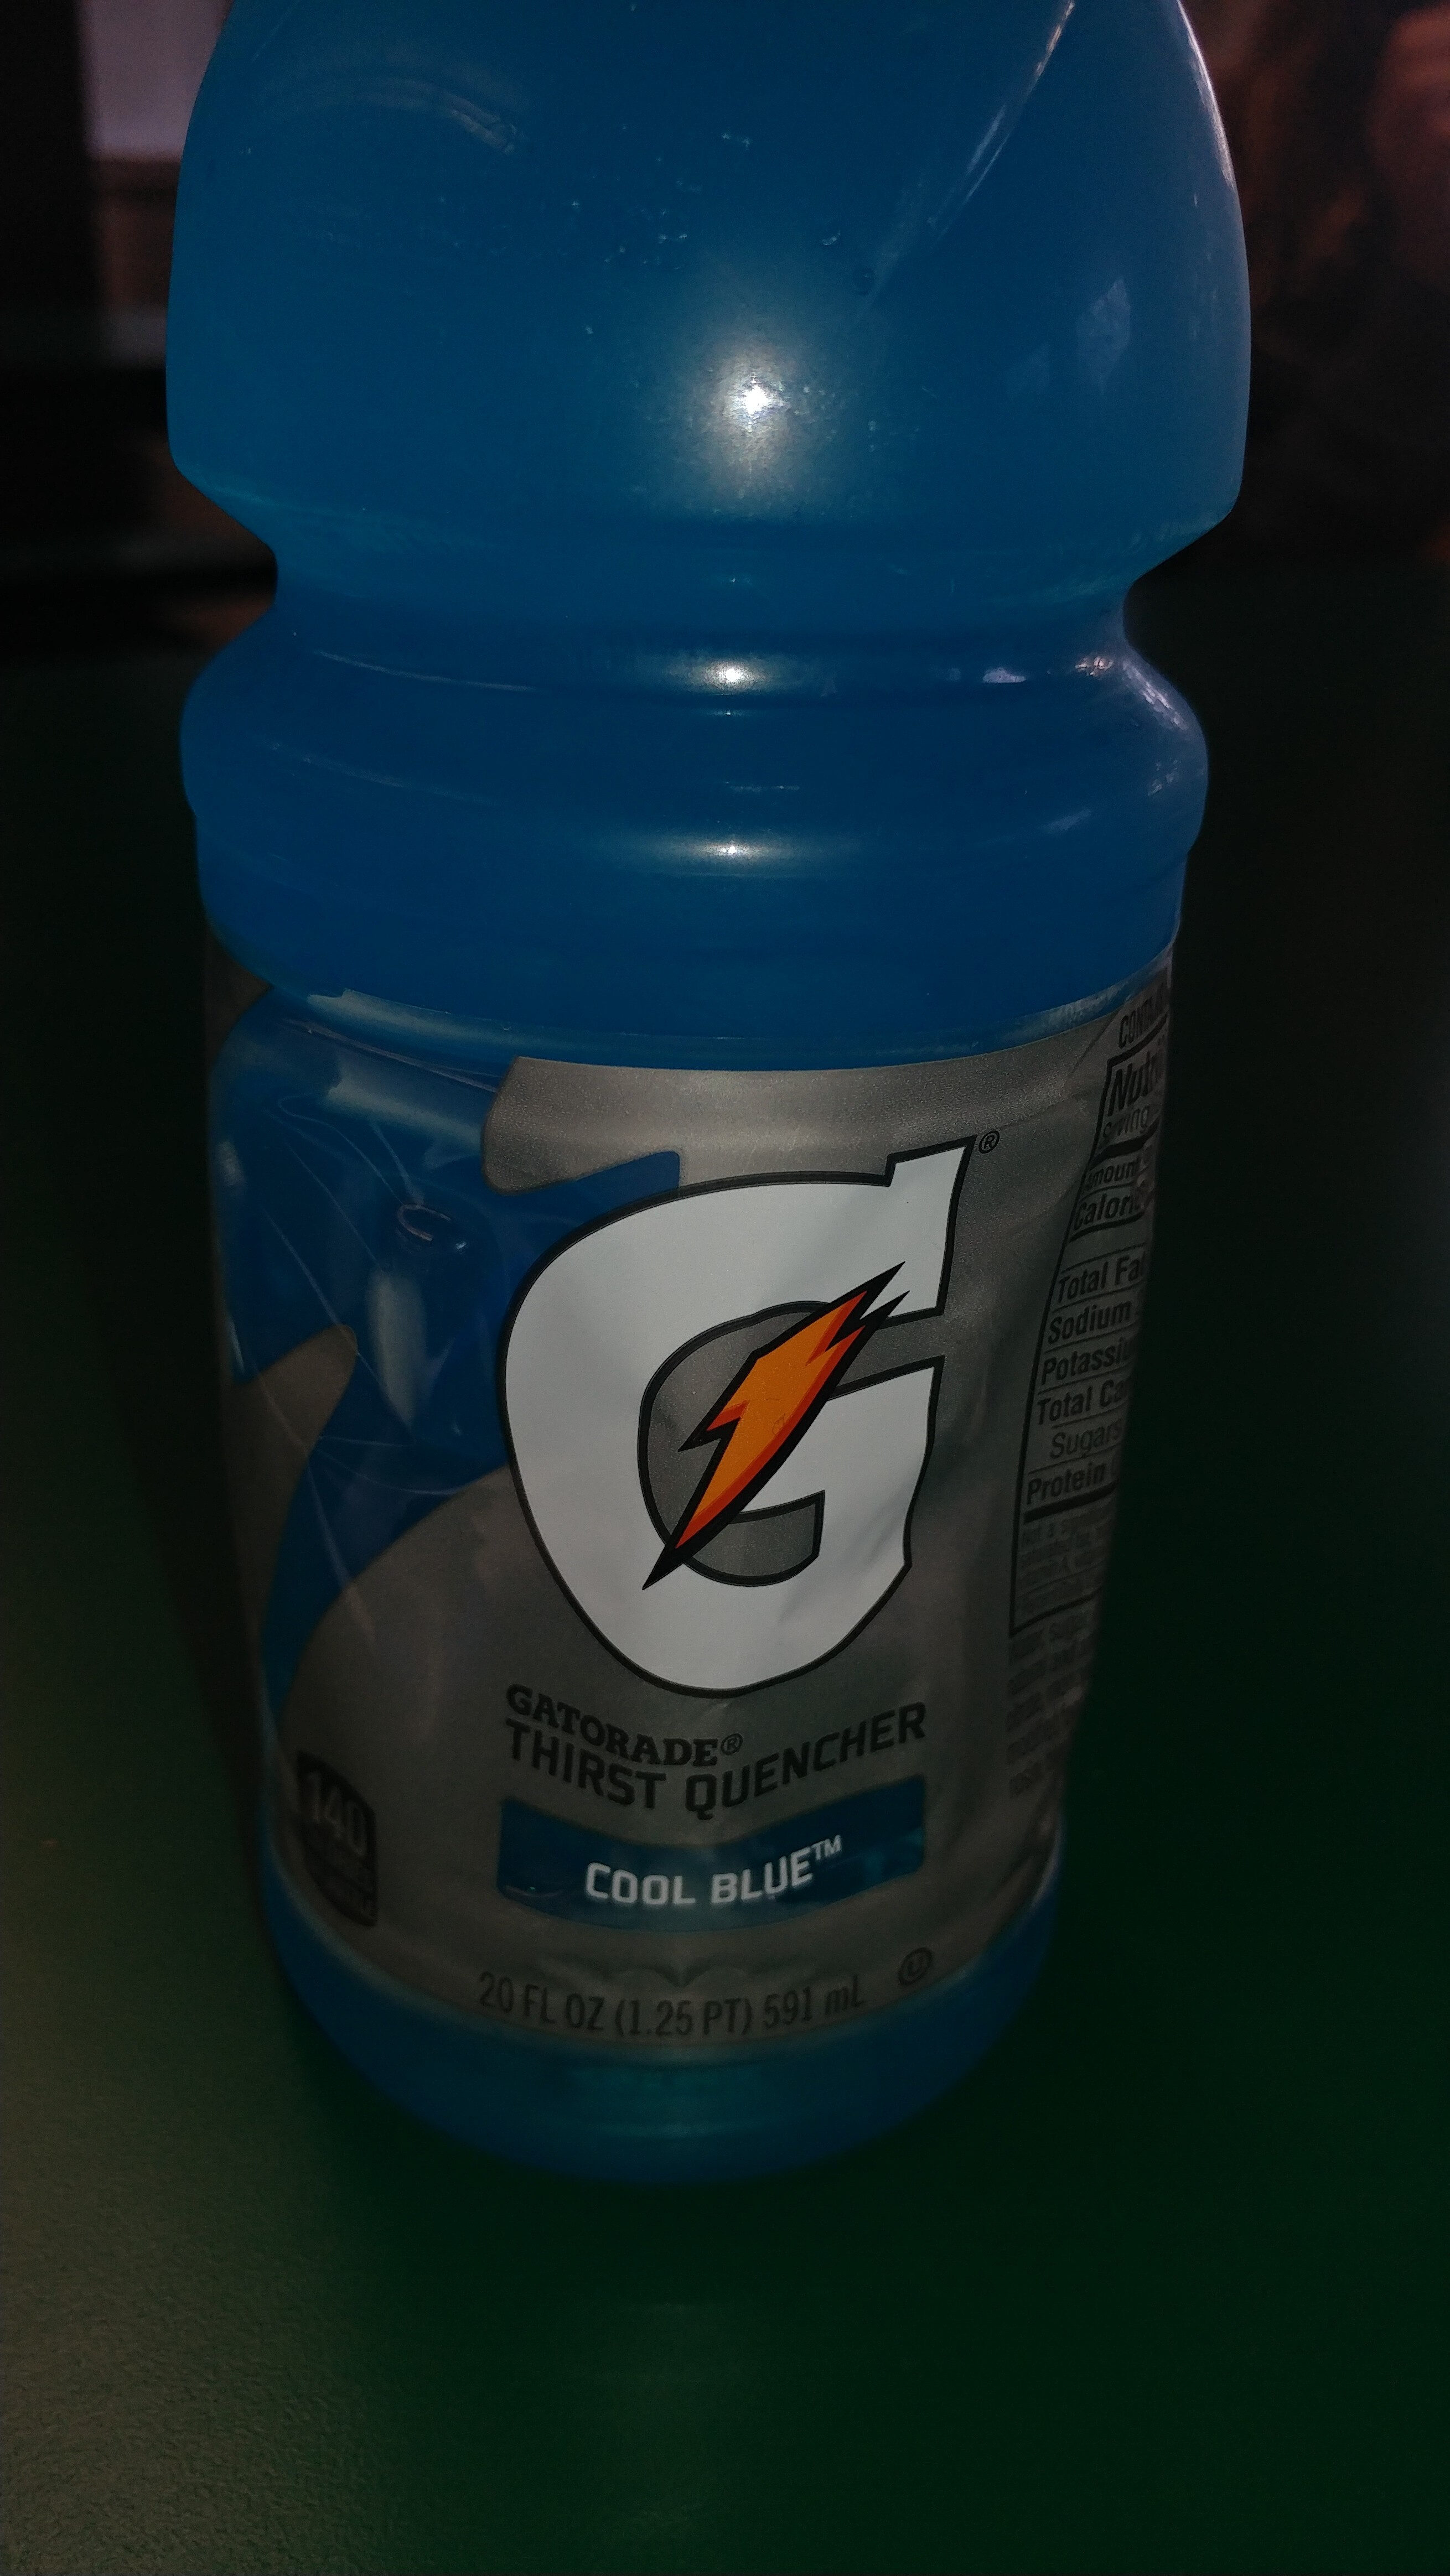 Cool blue thirst quencher, cool blue - Product - en